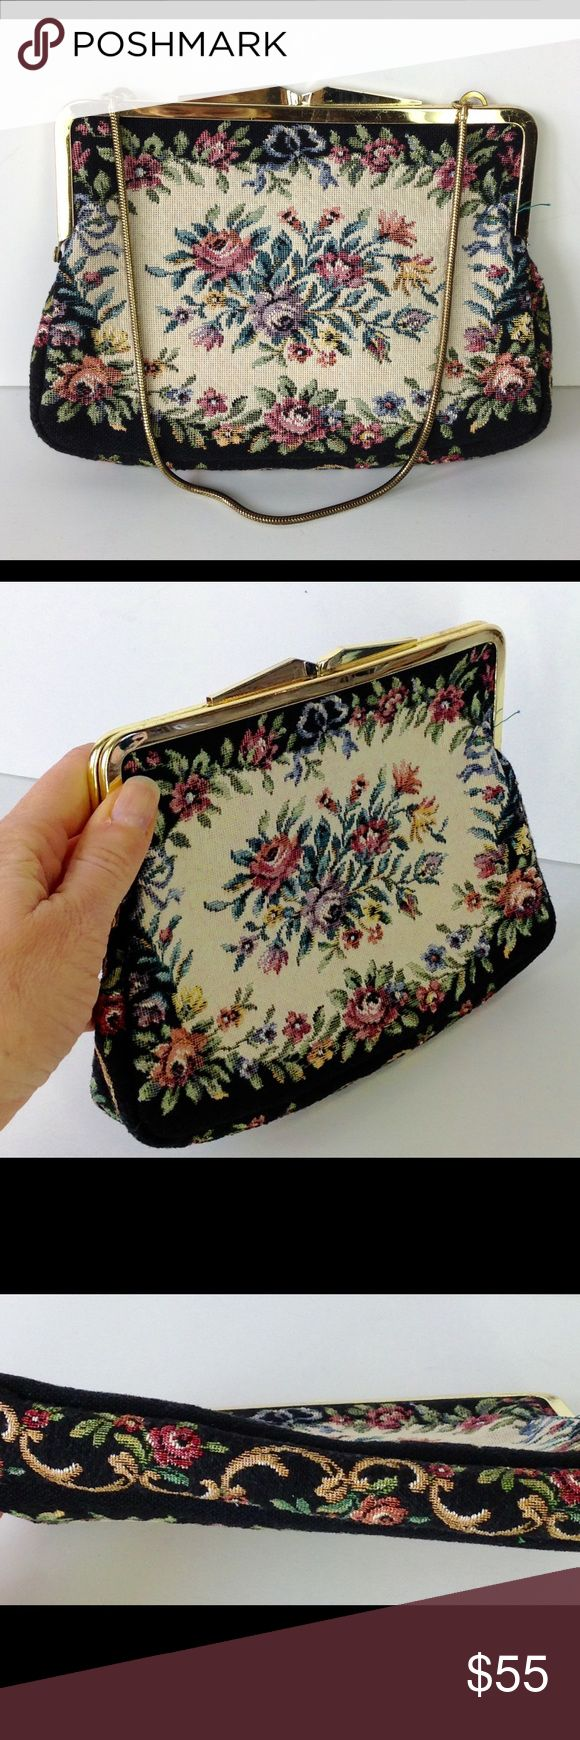 Vintage needlepoint floral clutch bag purse Vintage needlepoint floral clutch bag purse.  Very good condition. Kiss lock closure. Chain strap tucks into bag as desired.  Sweet! Bags Clutches & Wristlets